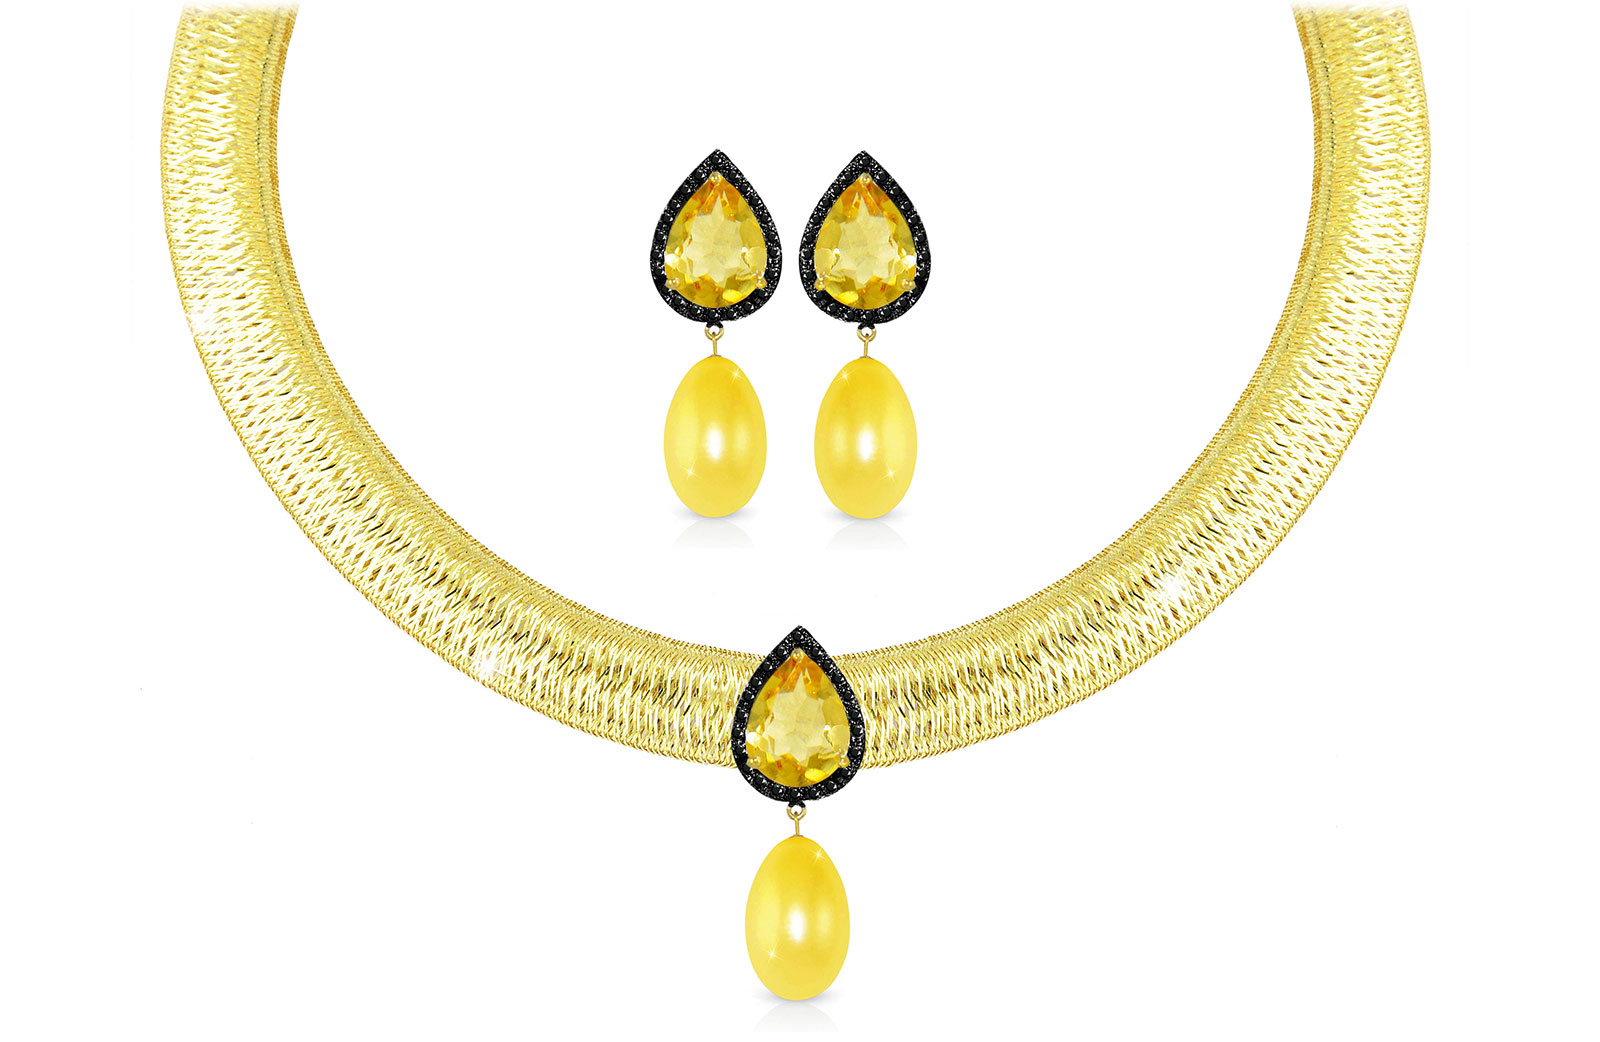 Vera Perla 18K Gold 0.36ct Black Diamonds, Citrine and 13mm Golden Pearl Jewelry Set - 2 pcs.